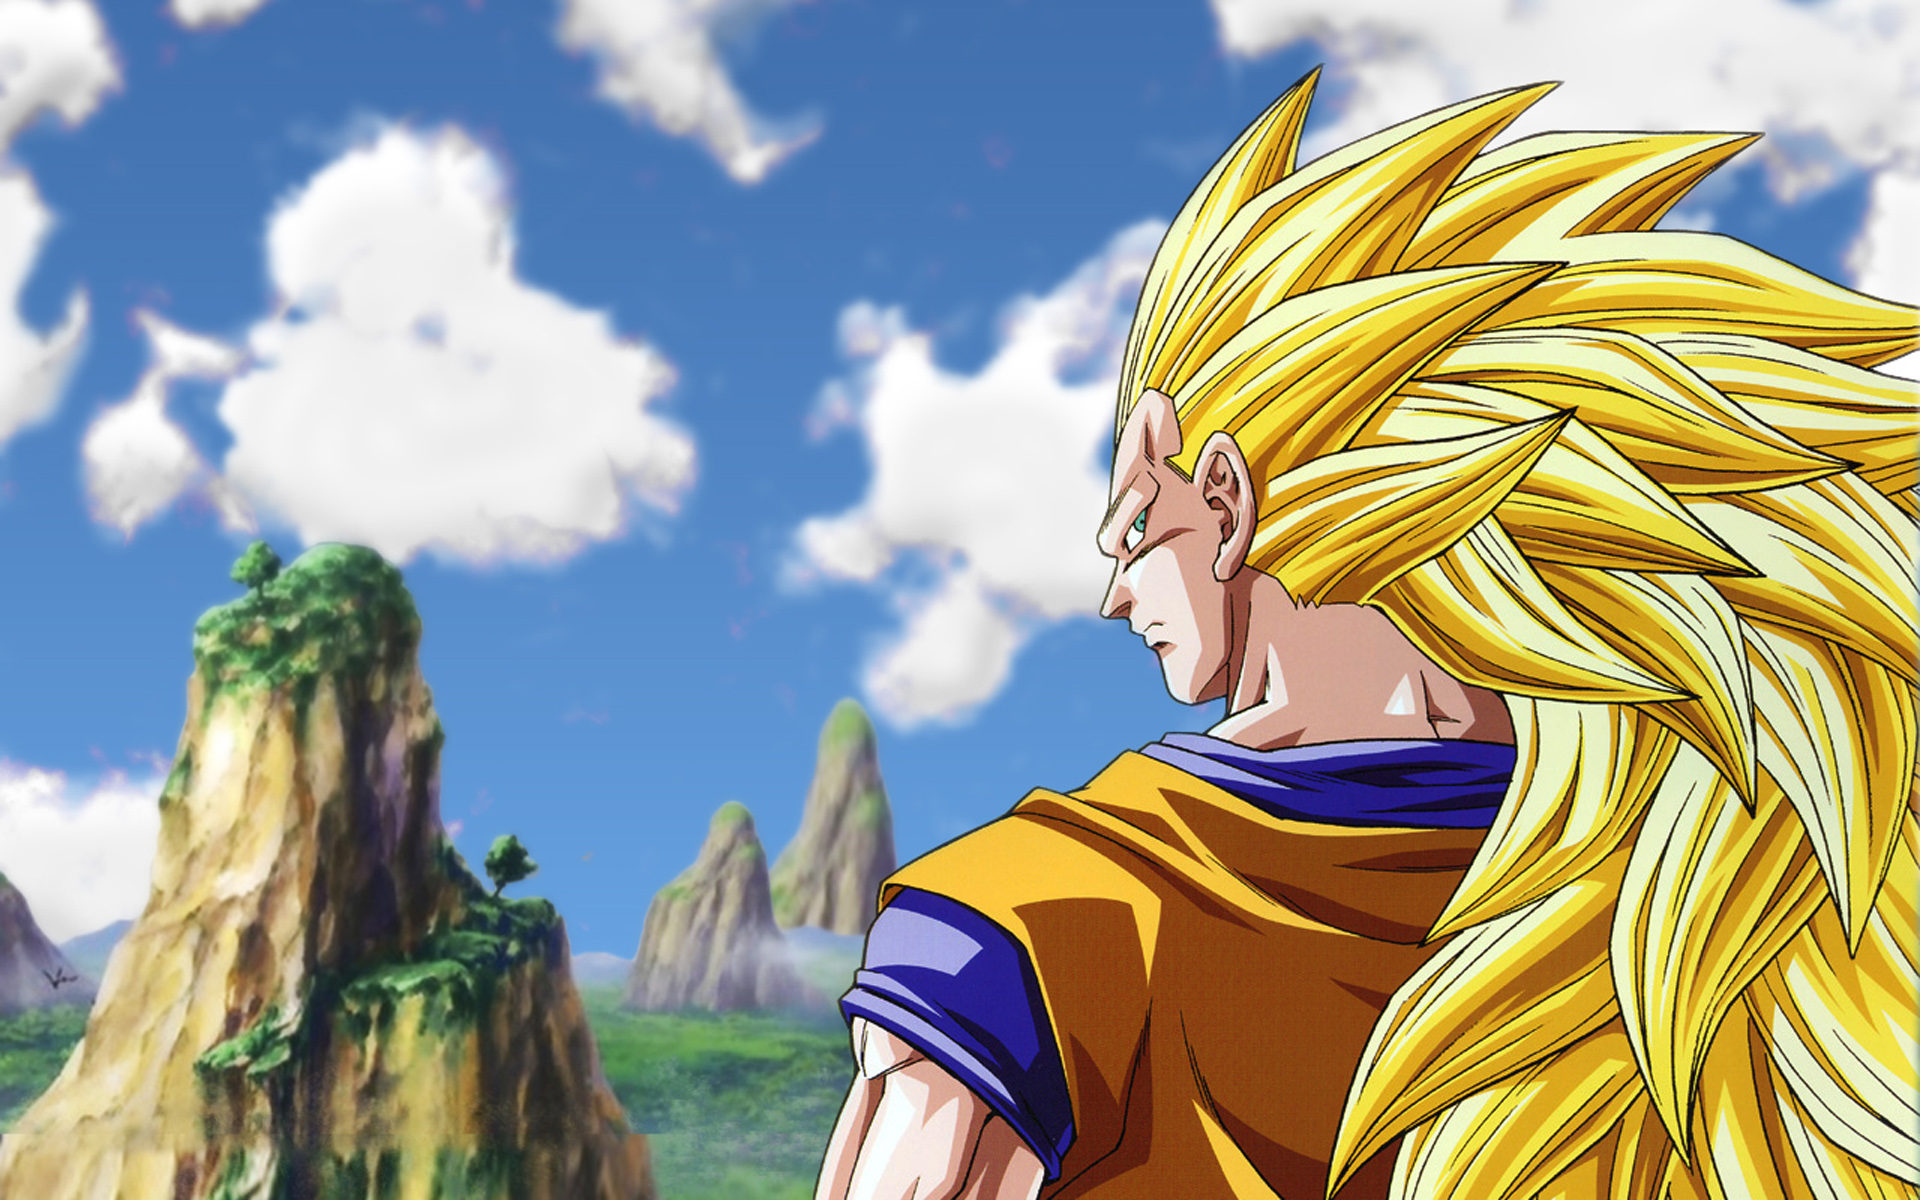 Dragon Ball Z Wallpapers High Quality Download 1920x1200